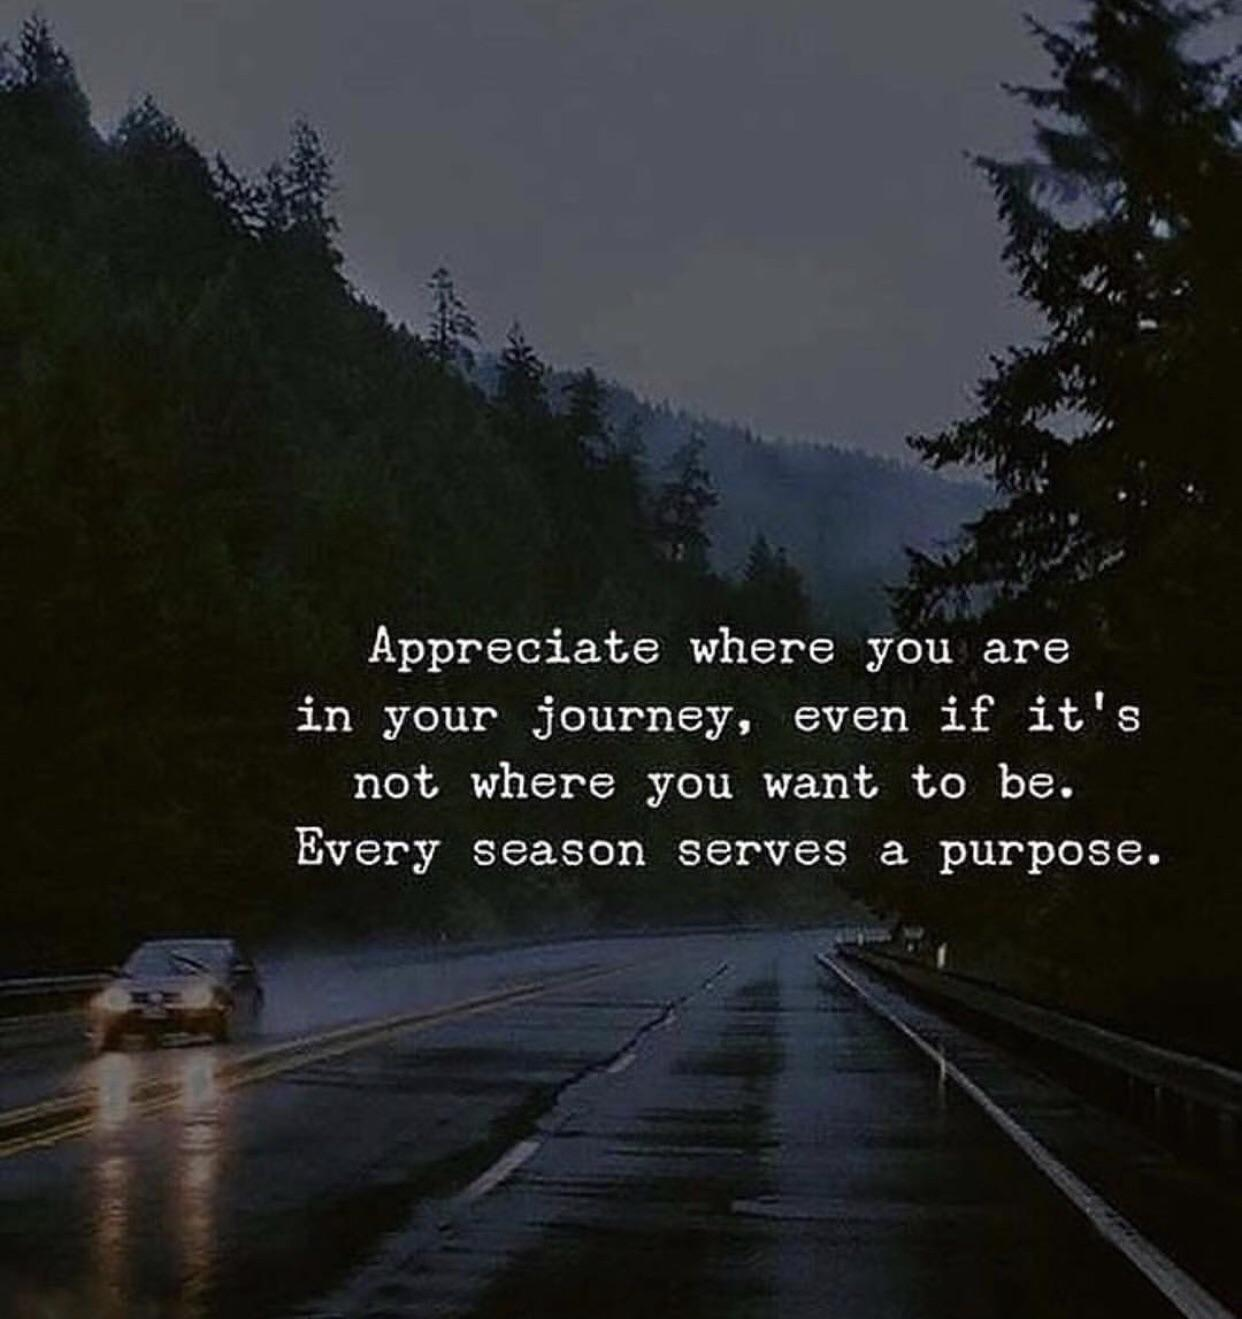 [Image] Appreciate where you are…